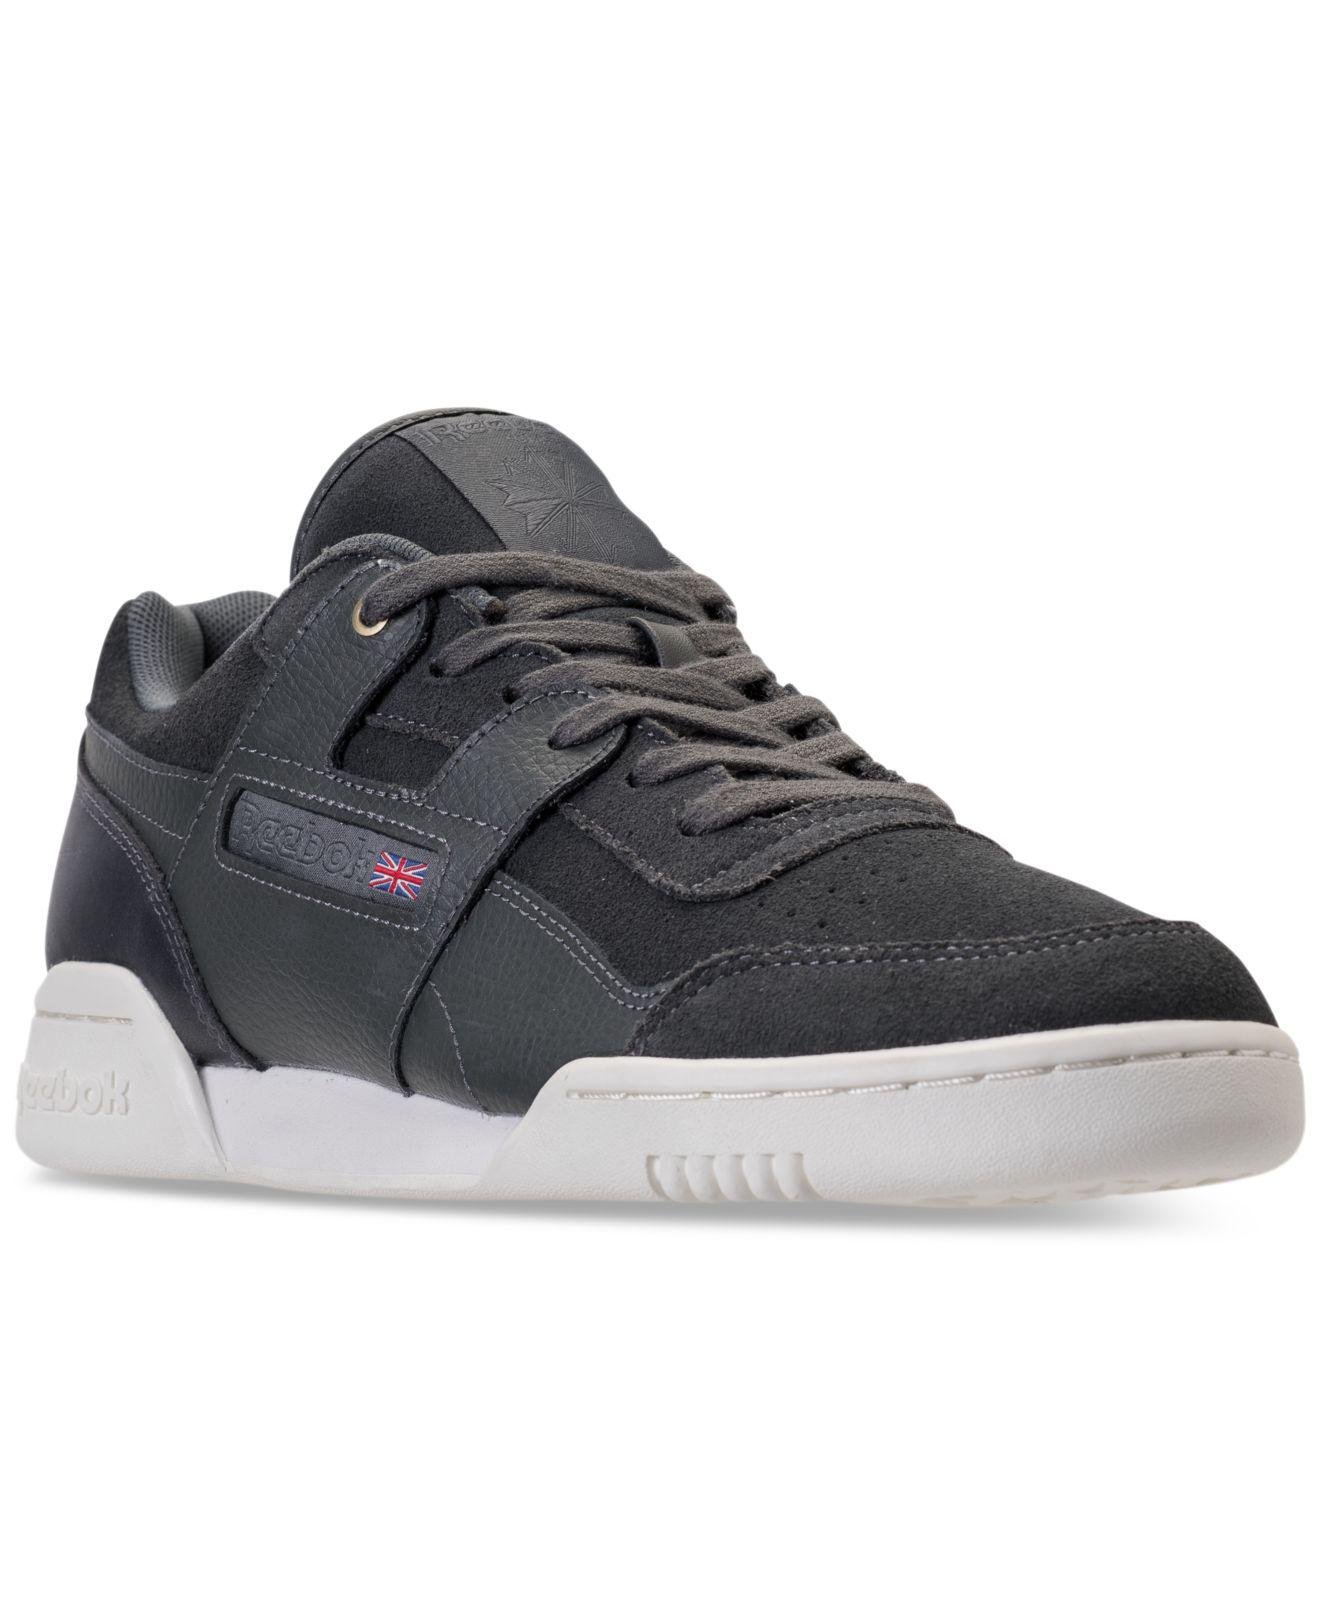 Reebok Men's Workout Plus Mcc Casual Sneakers from Finish Line NrY6kZMG5